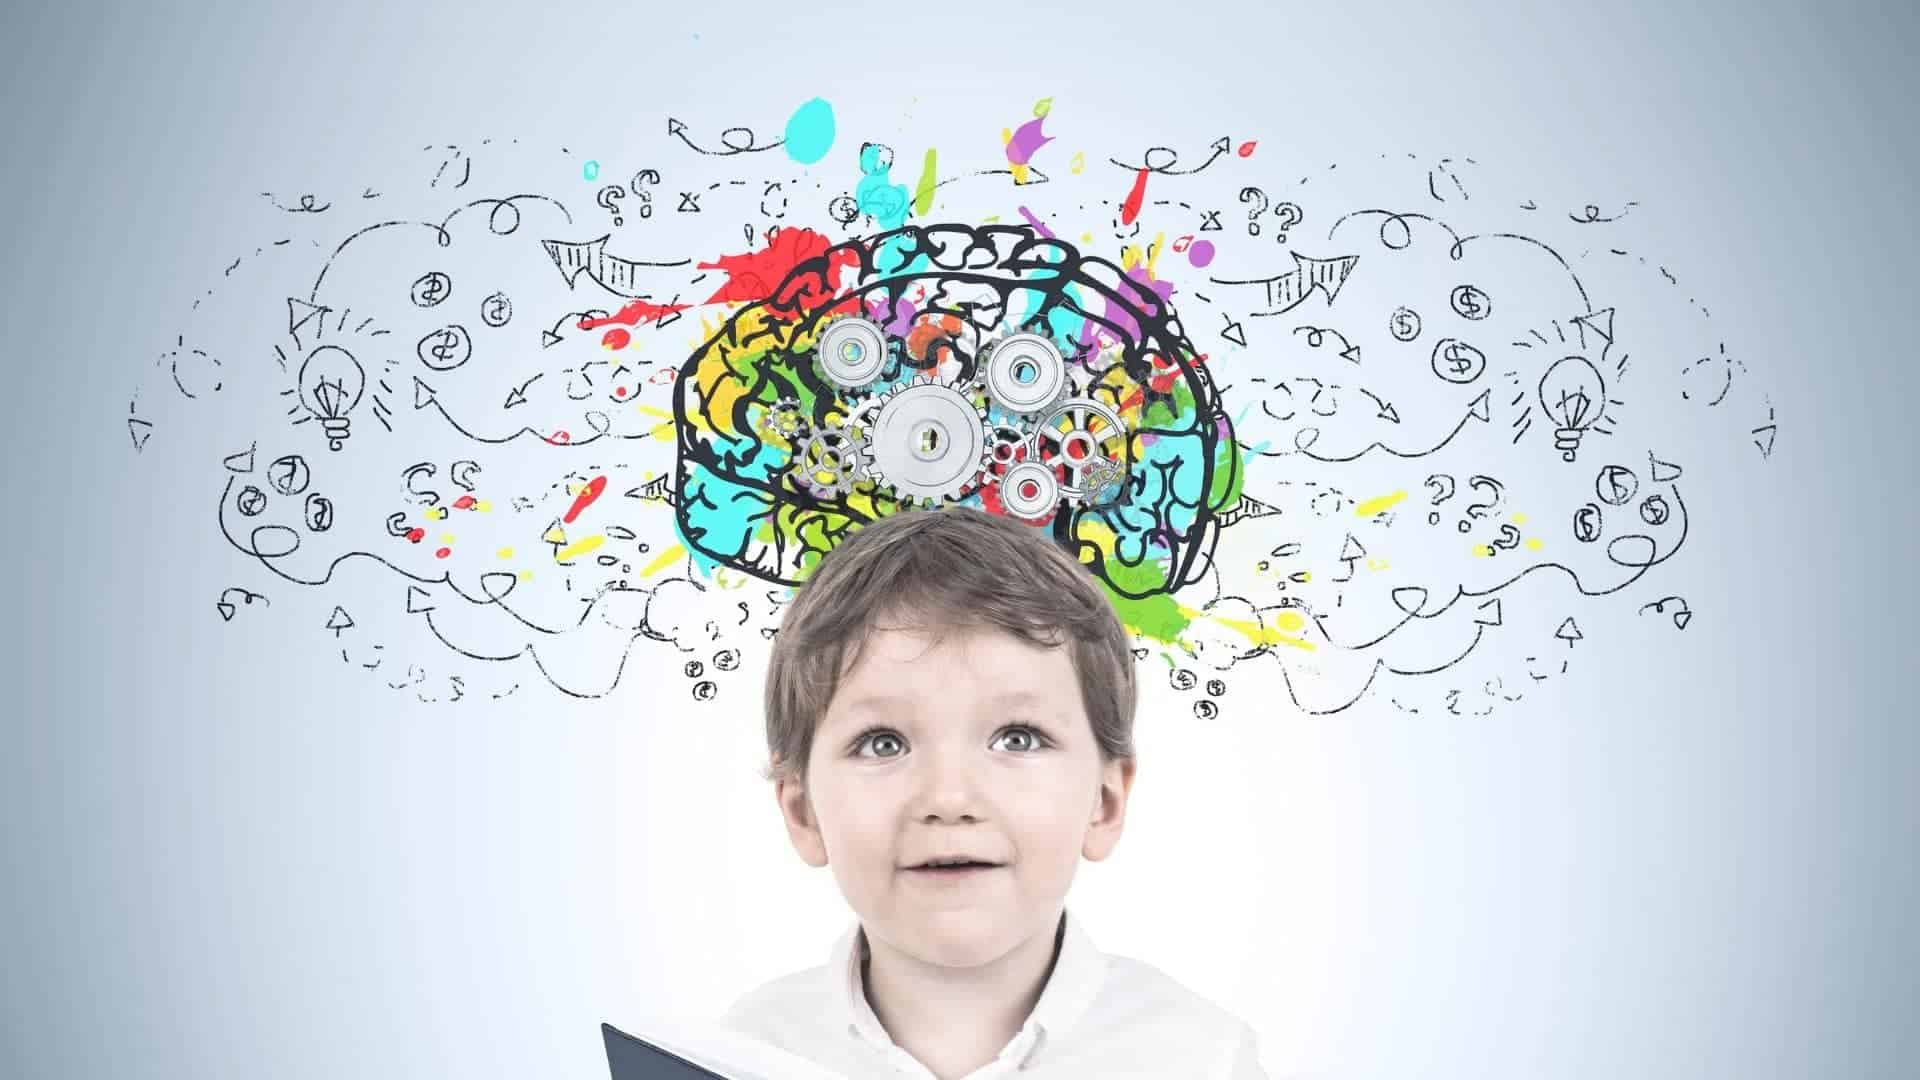 How To Accelerate The Brain Development Of A Child